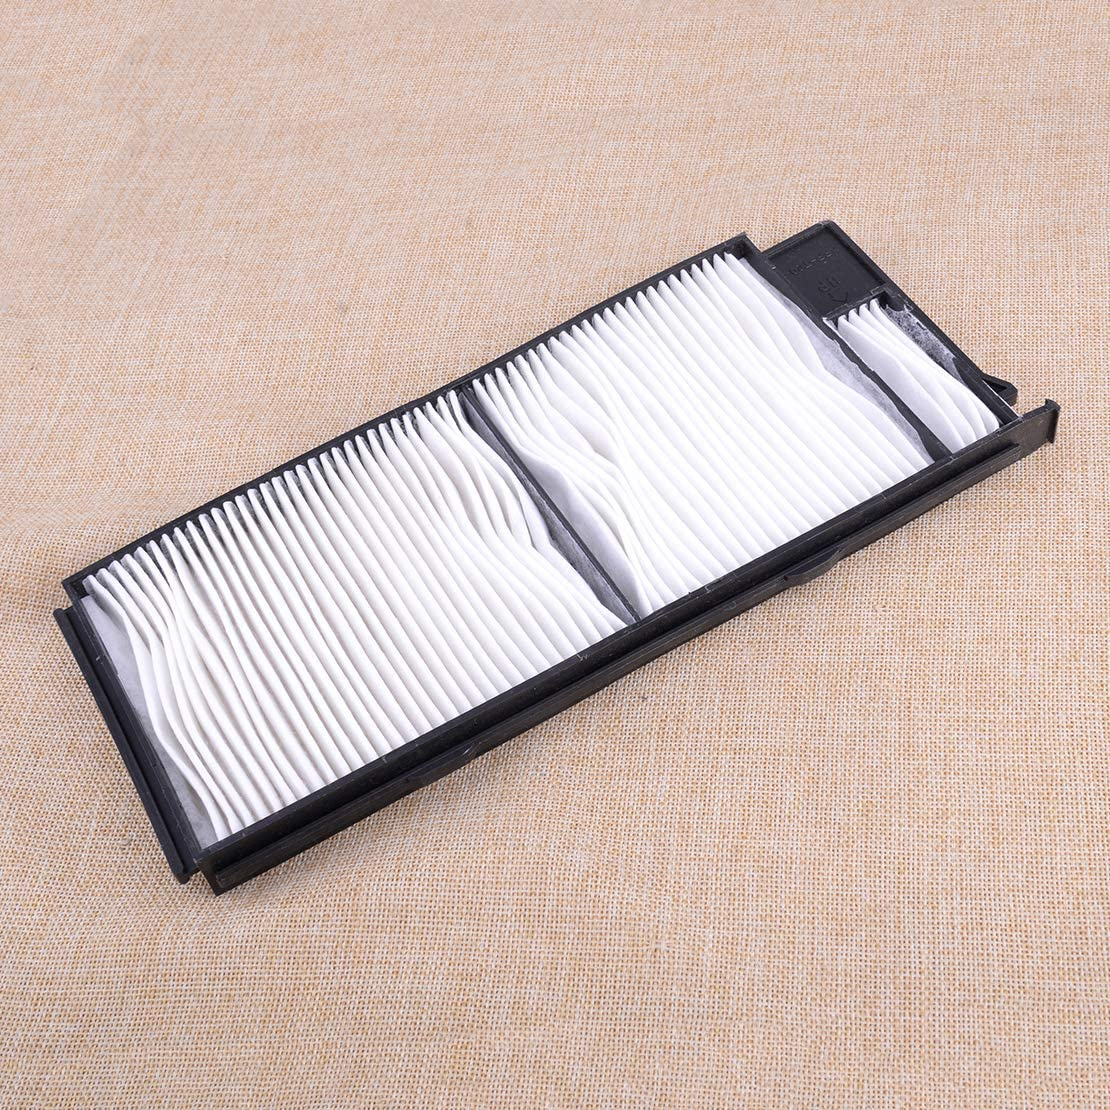 CITALL 2Pcs Cabin Air Filter Fit for Toyota Land Cruiser Lexus LX470 V8 4.7L